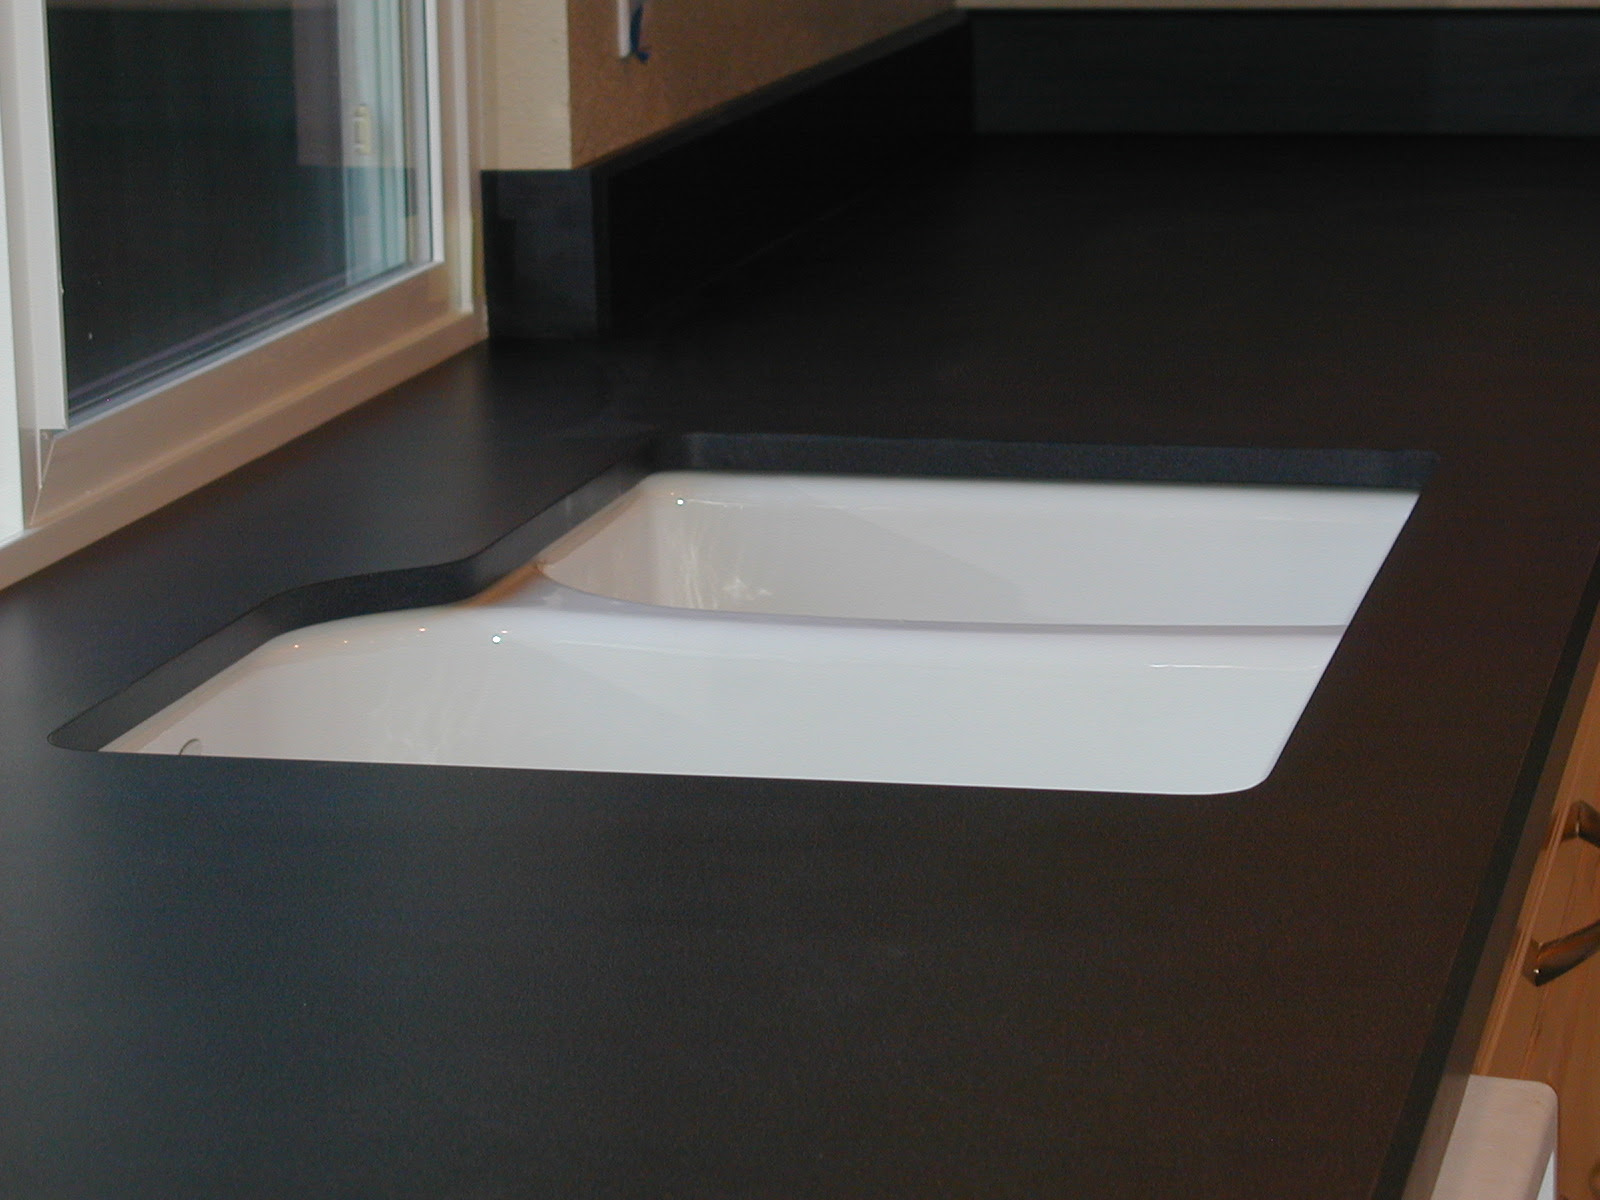 Laminate Countertop with Undermount Sink